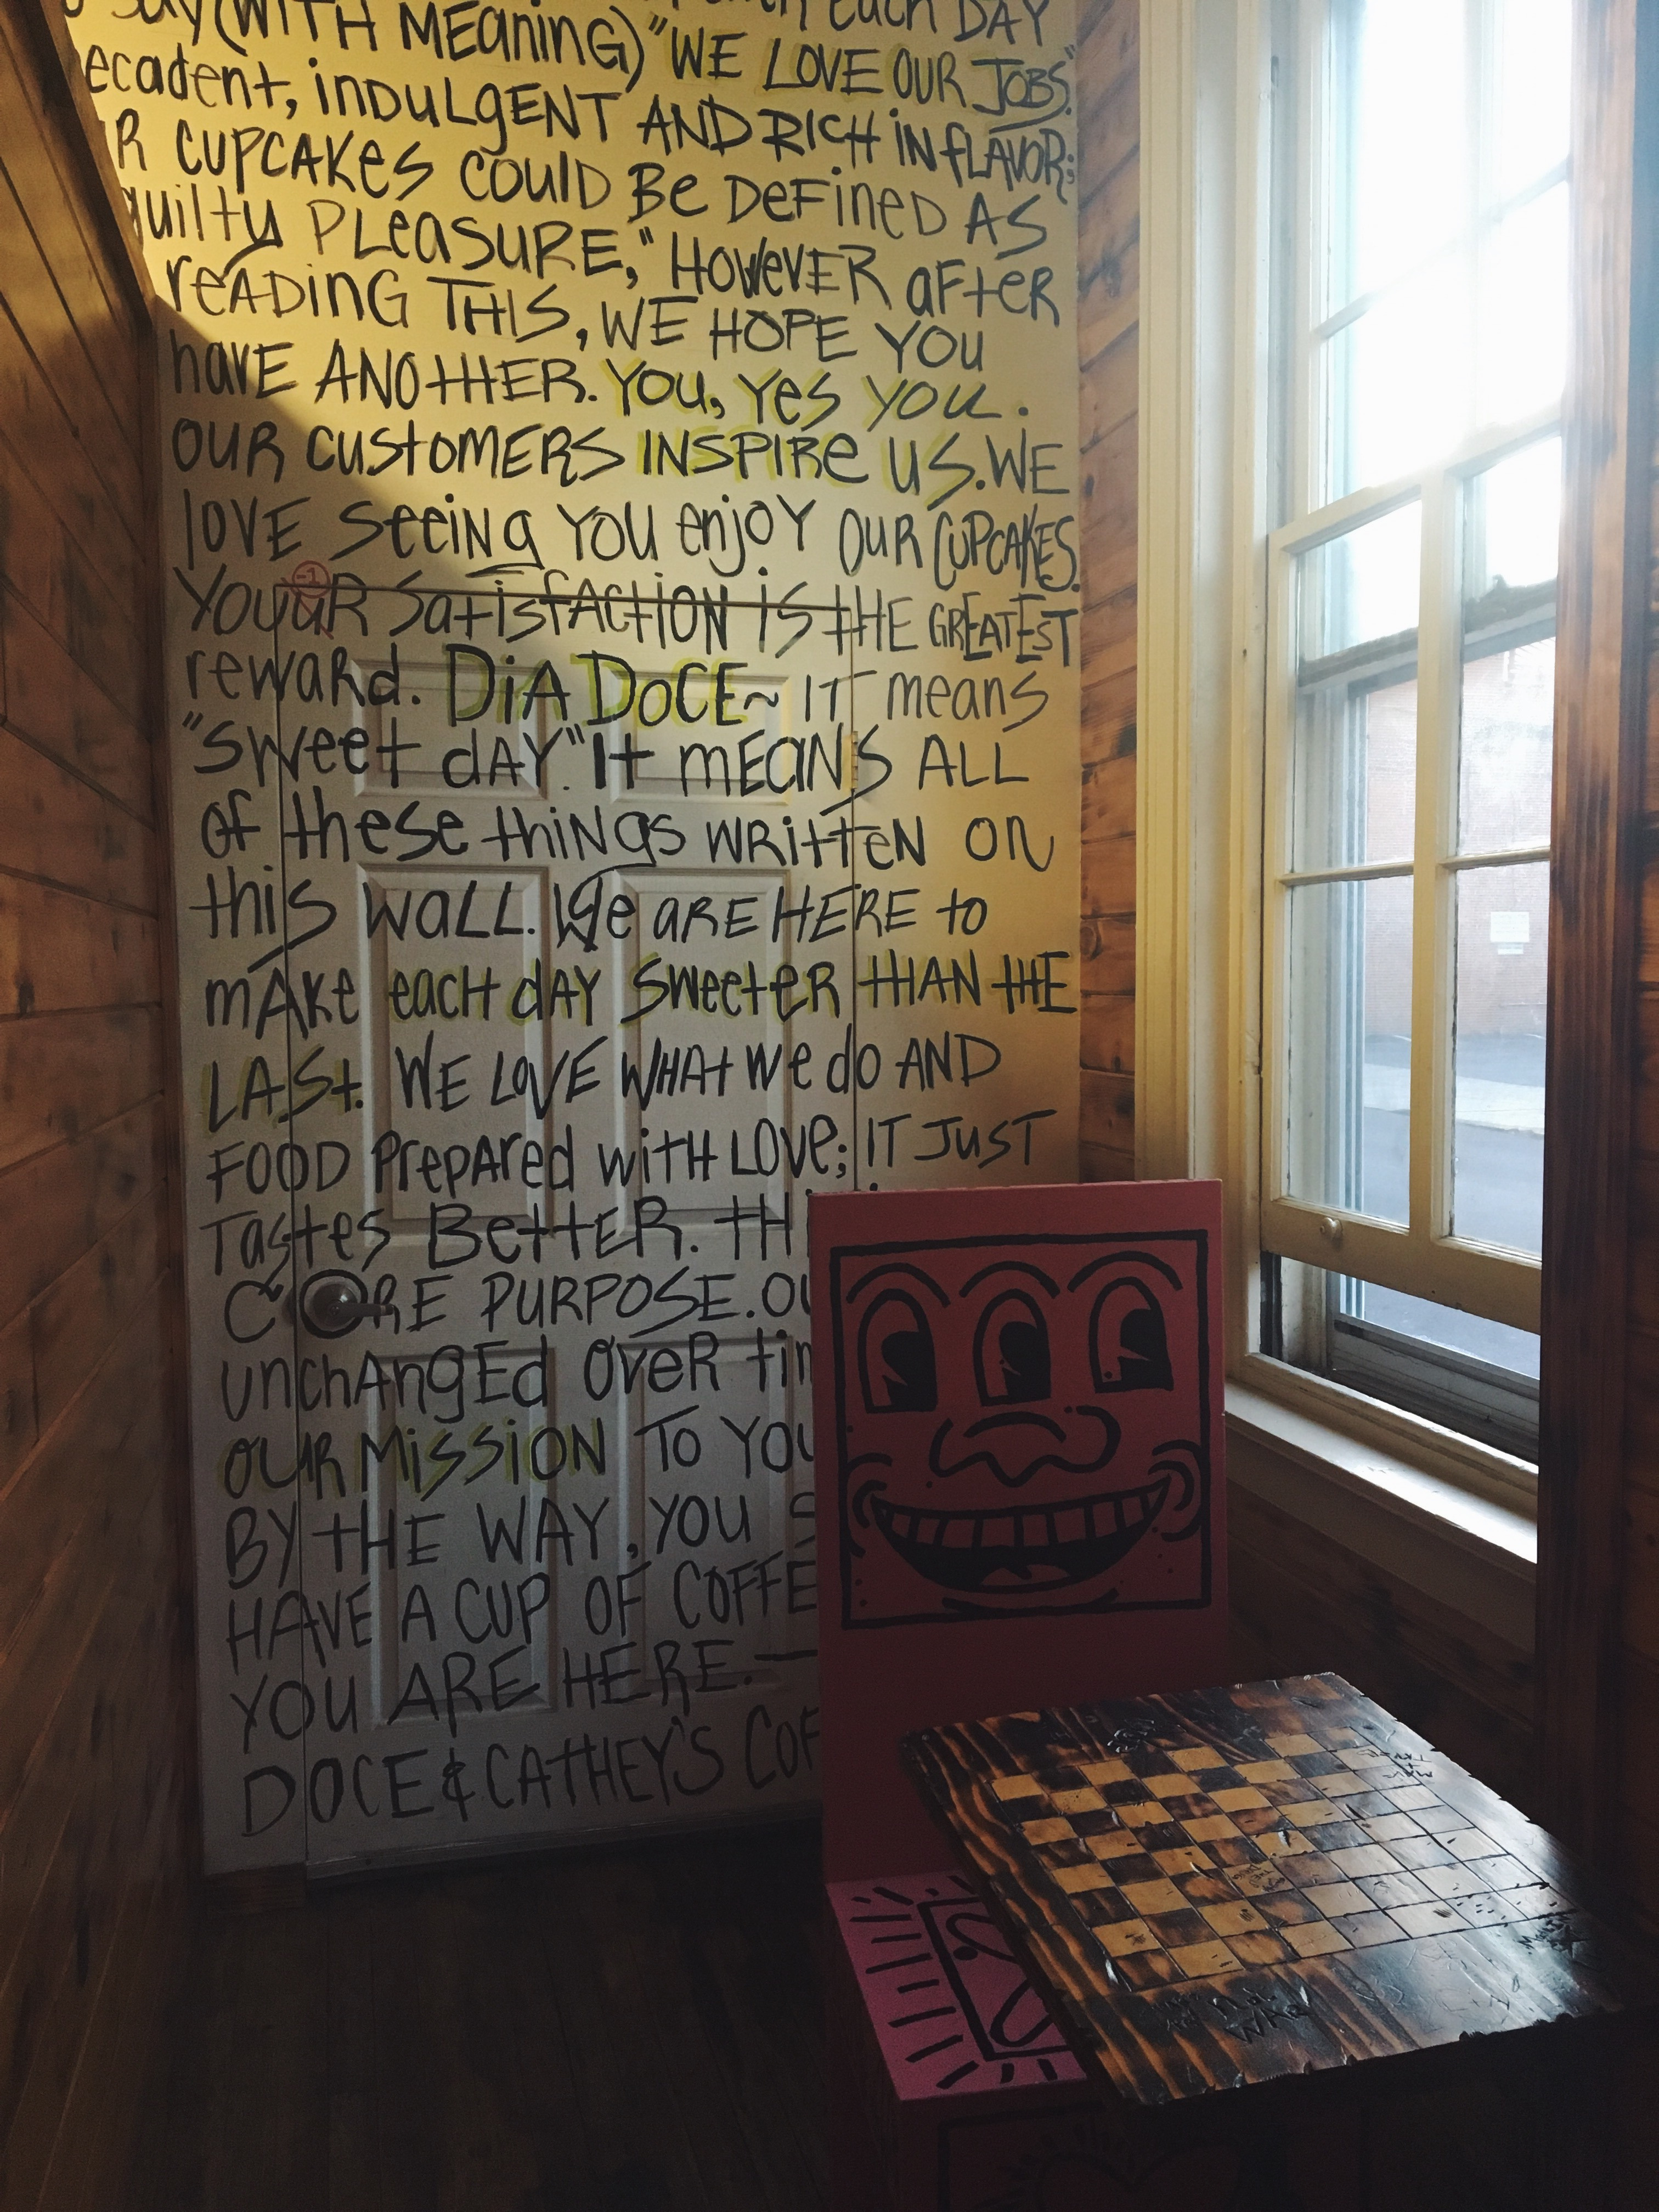 West Chester study spots: a smiling chair sits in front of a word-filled wall inside the coffee and cupcake shop Dia Doce, located on High Street